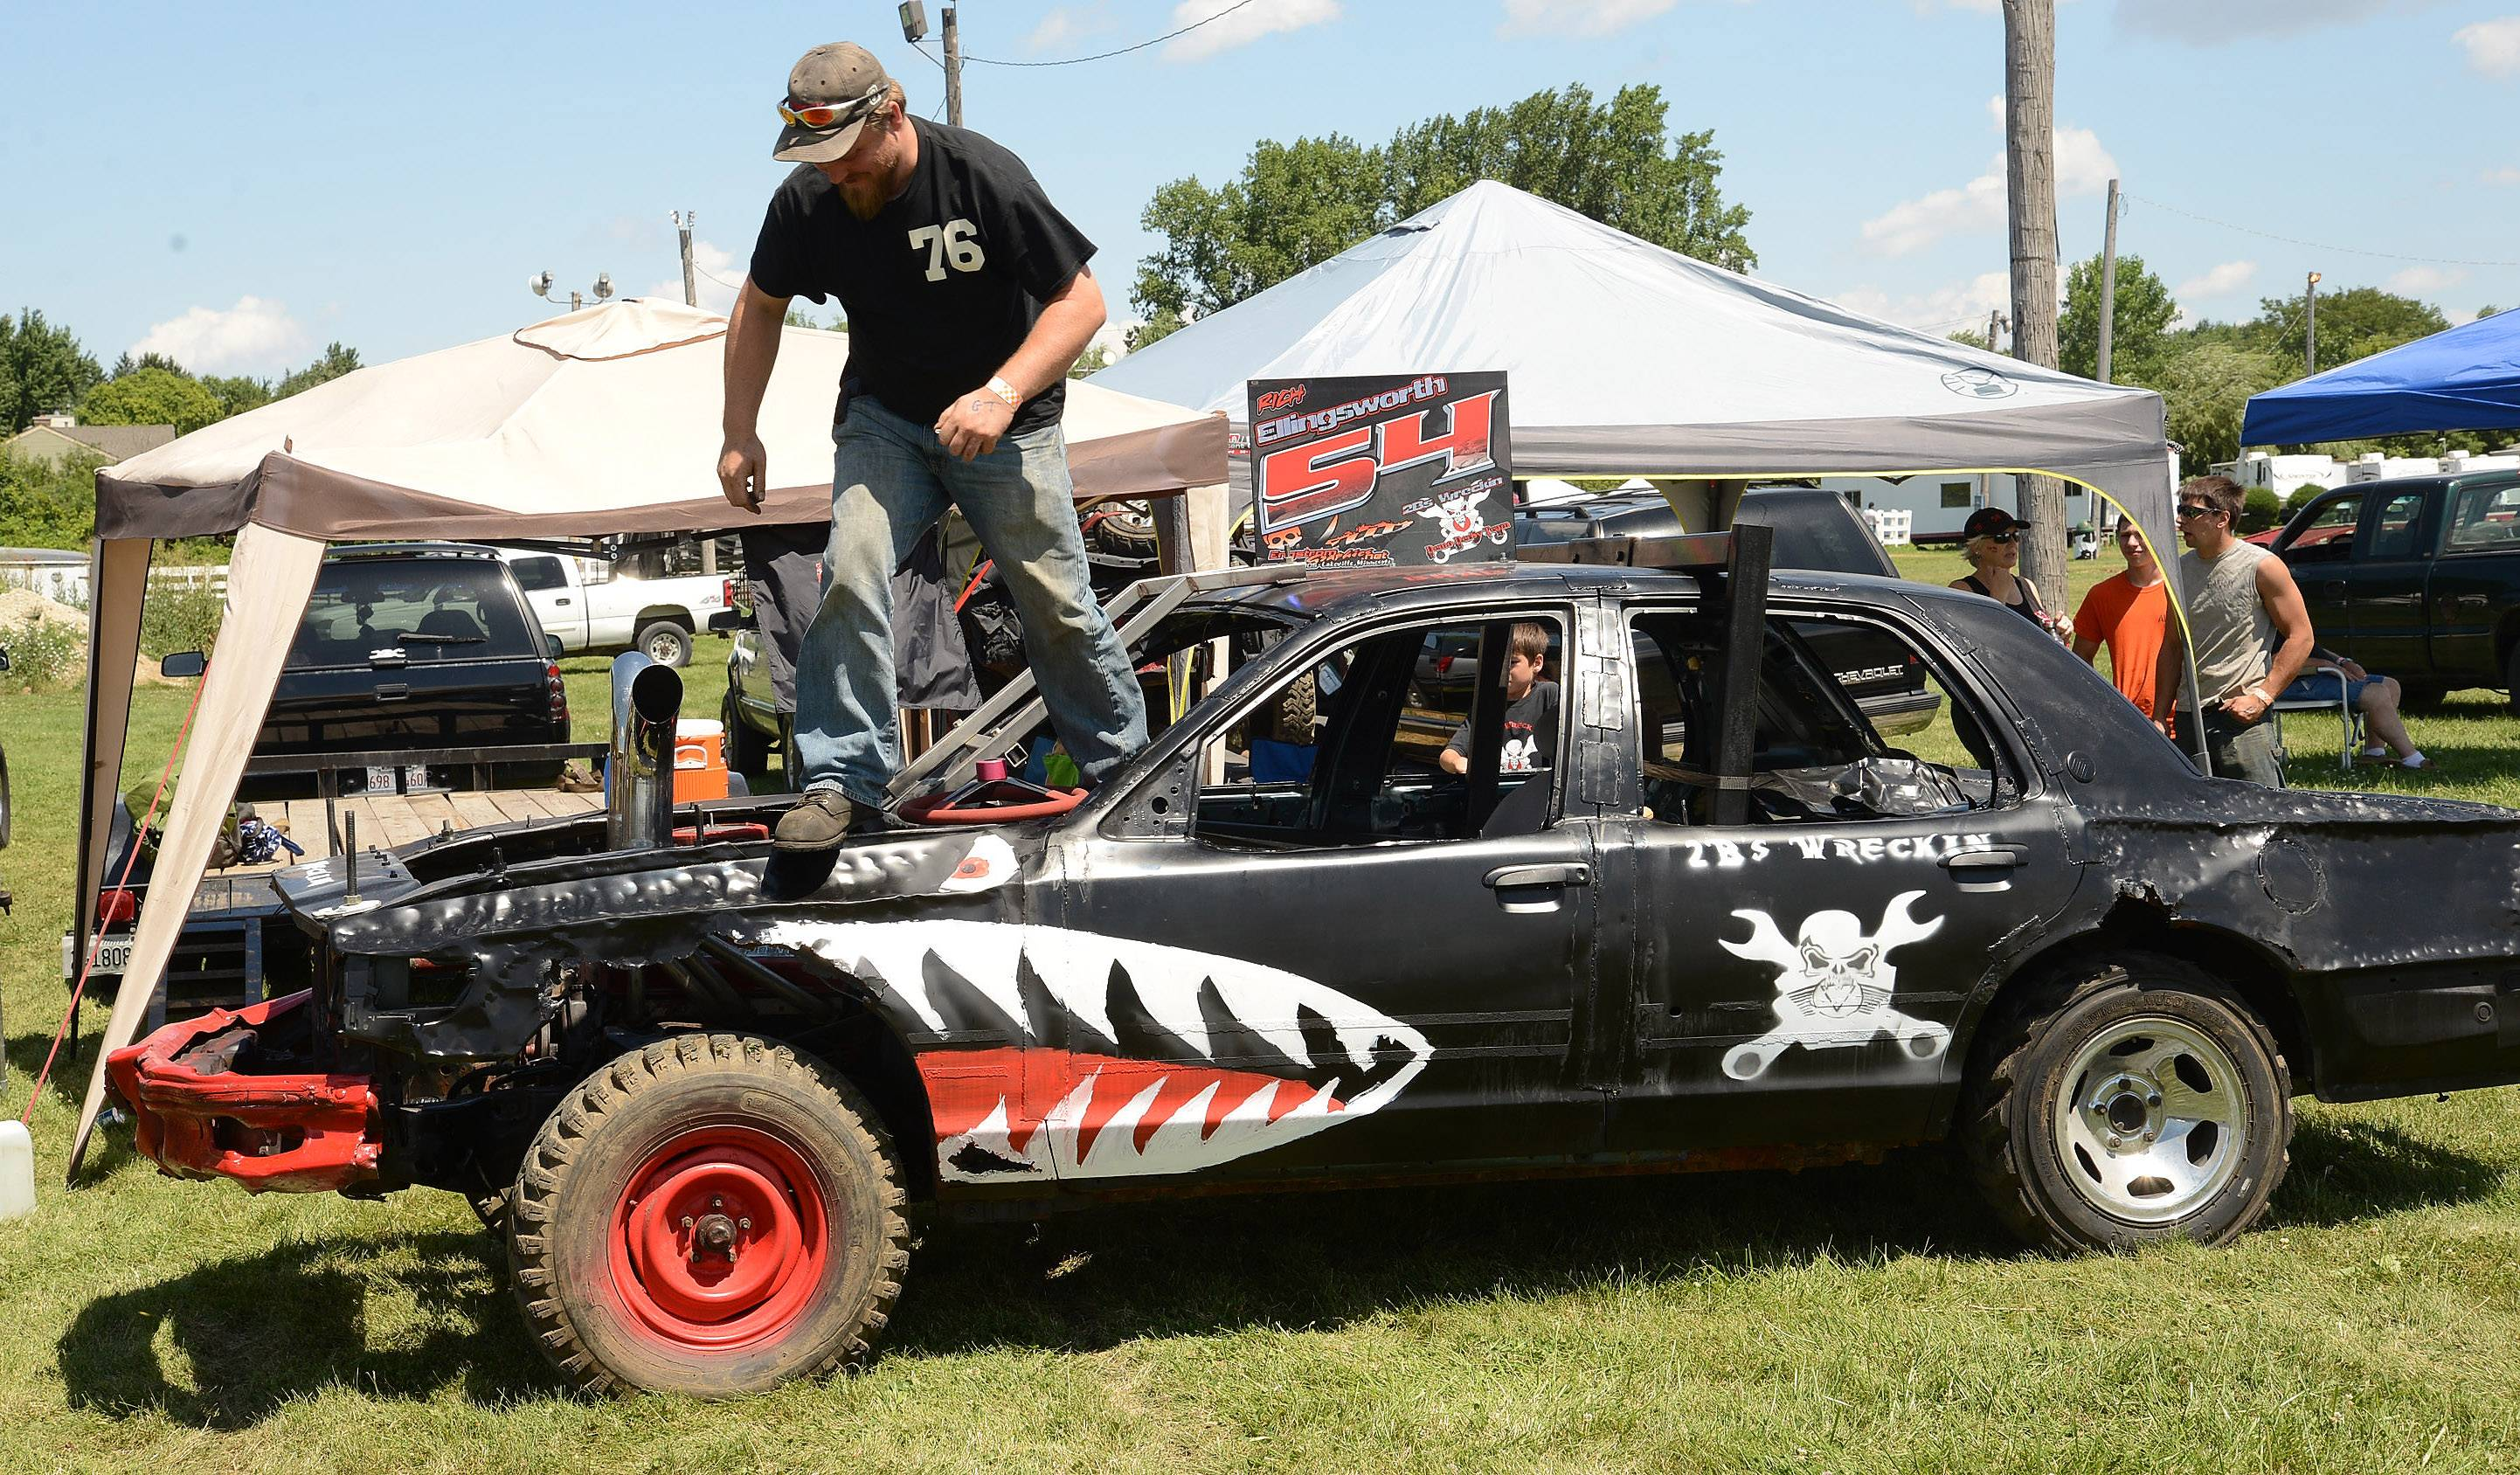 Bradley Ellingsworth of Plainfield gets his car ready for the demolition derby Sunday on the final day at the DuPage County Fair.